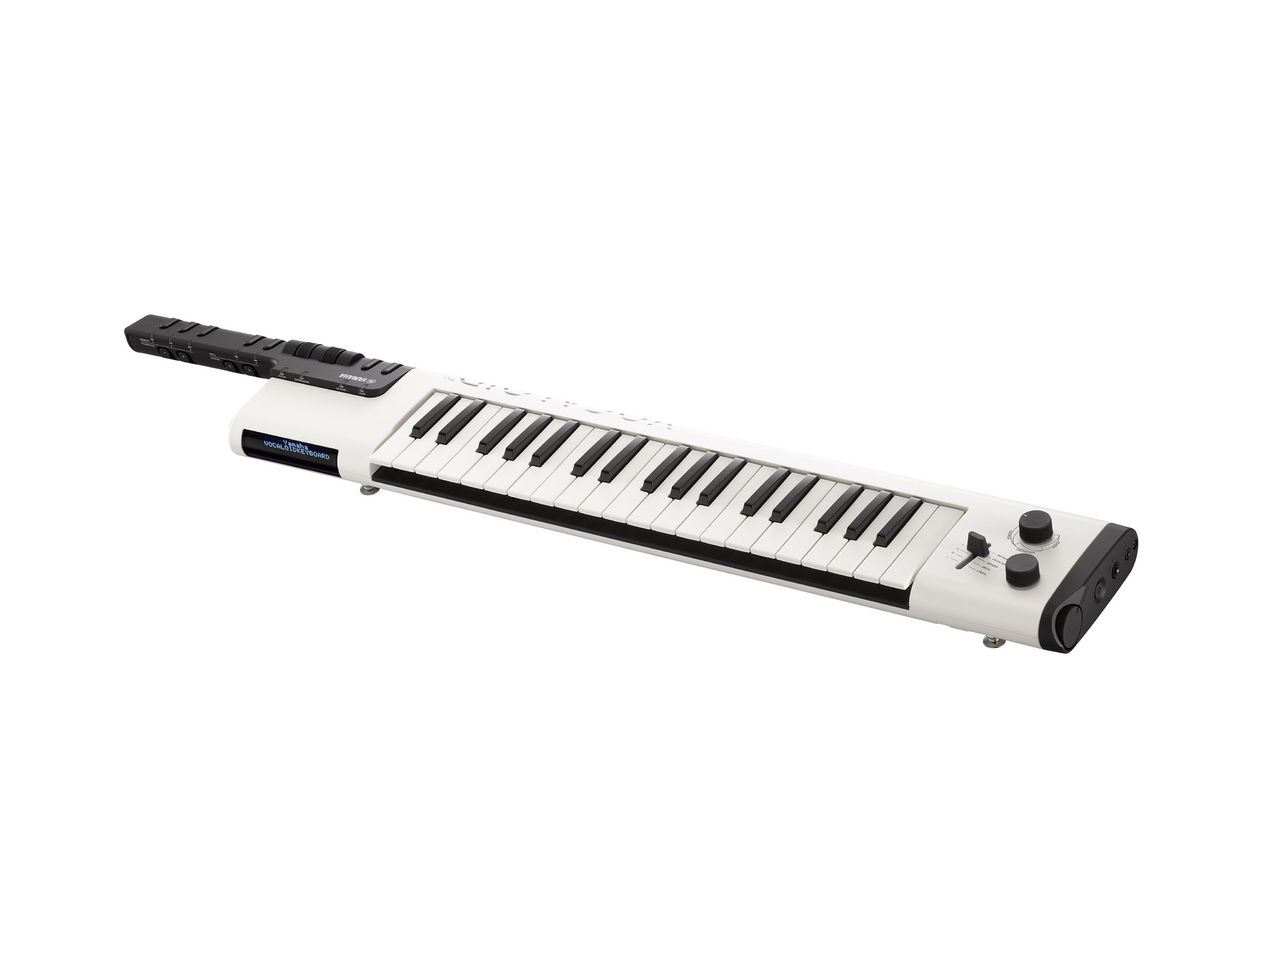 YAMAHA VKB-100 Vocaloid keyboard Outlet Specials]